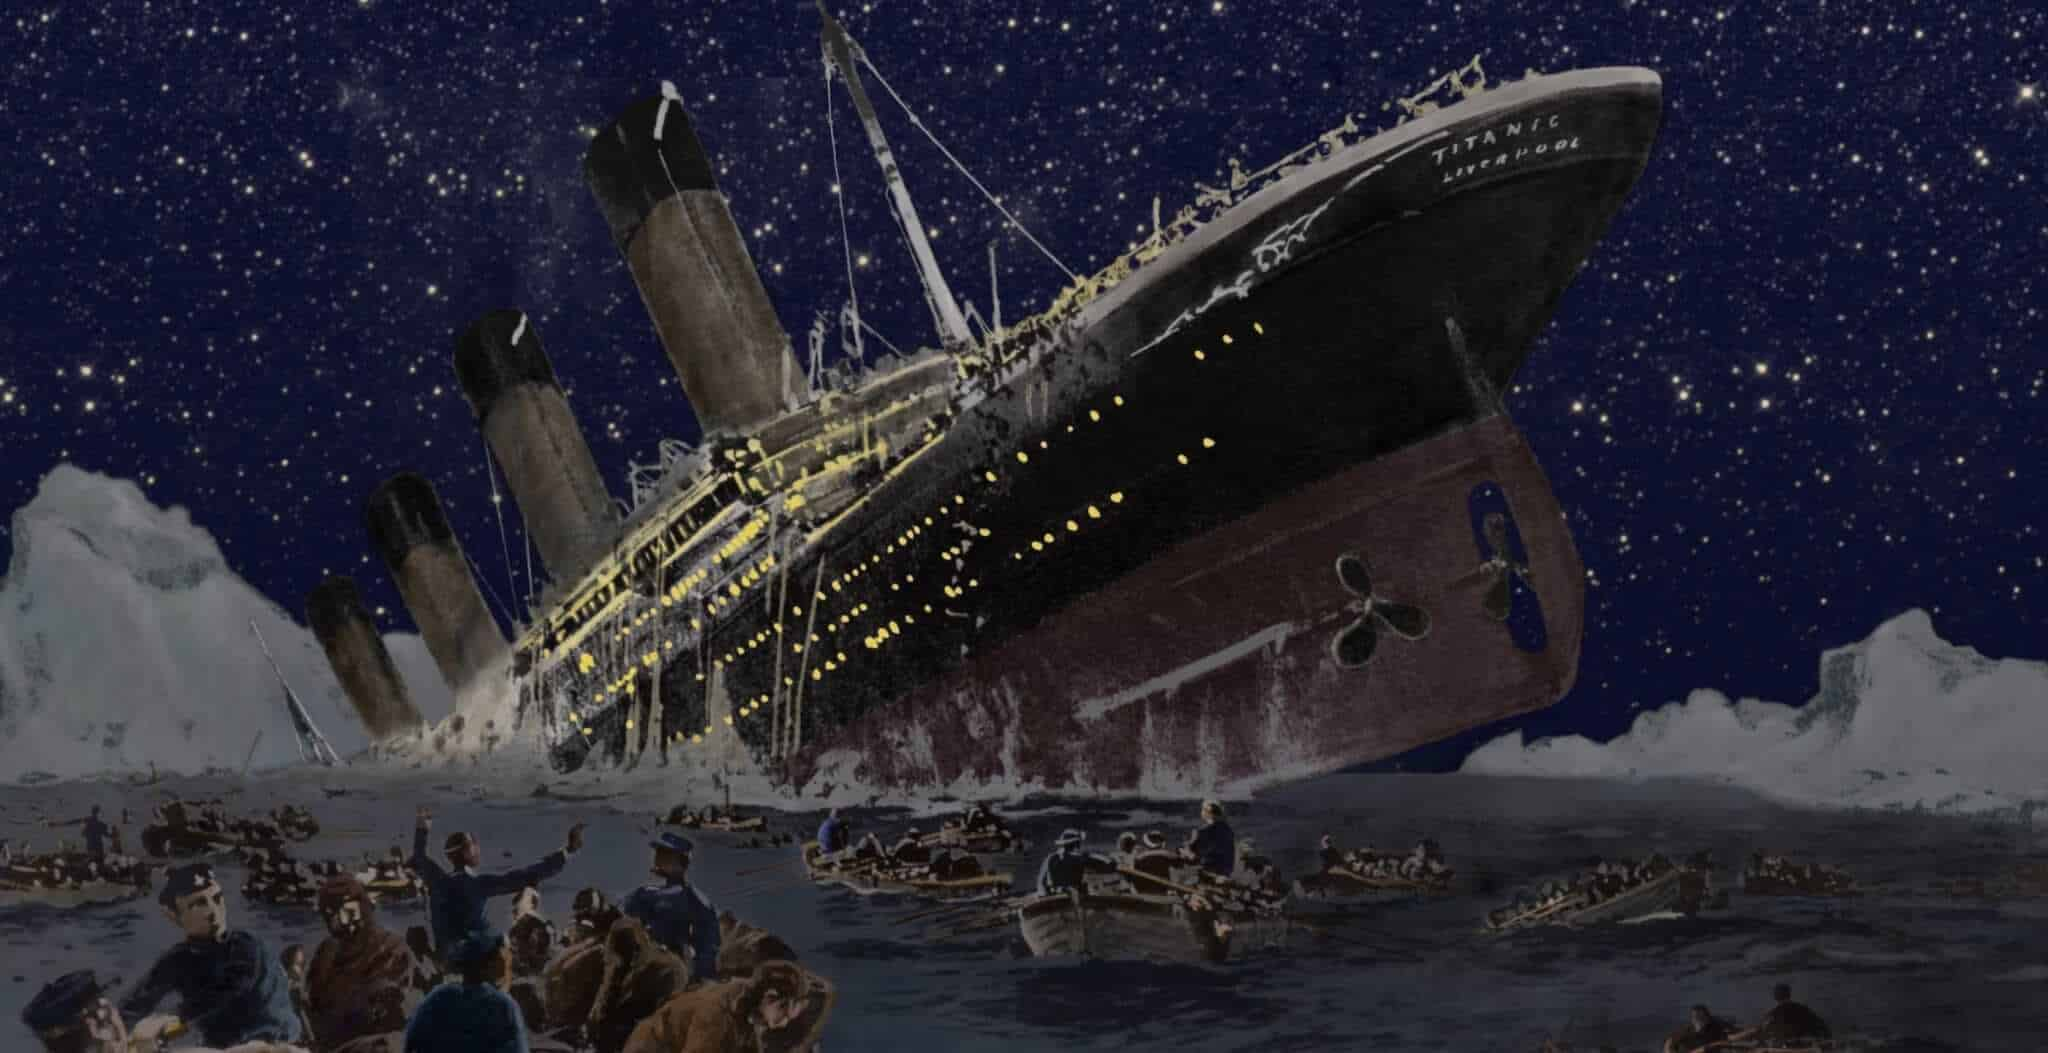 The Sinking of RMS Titanic